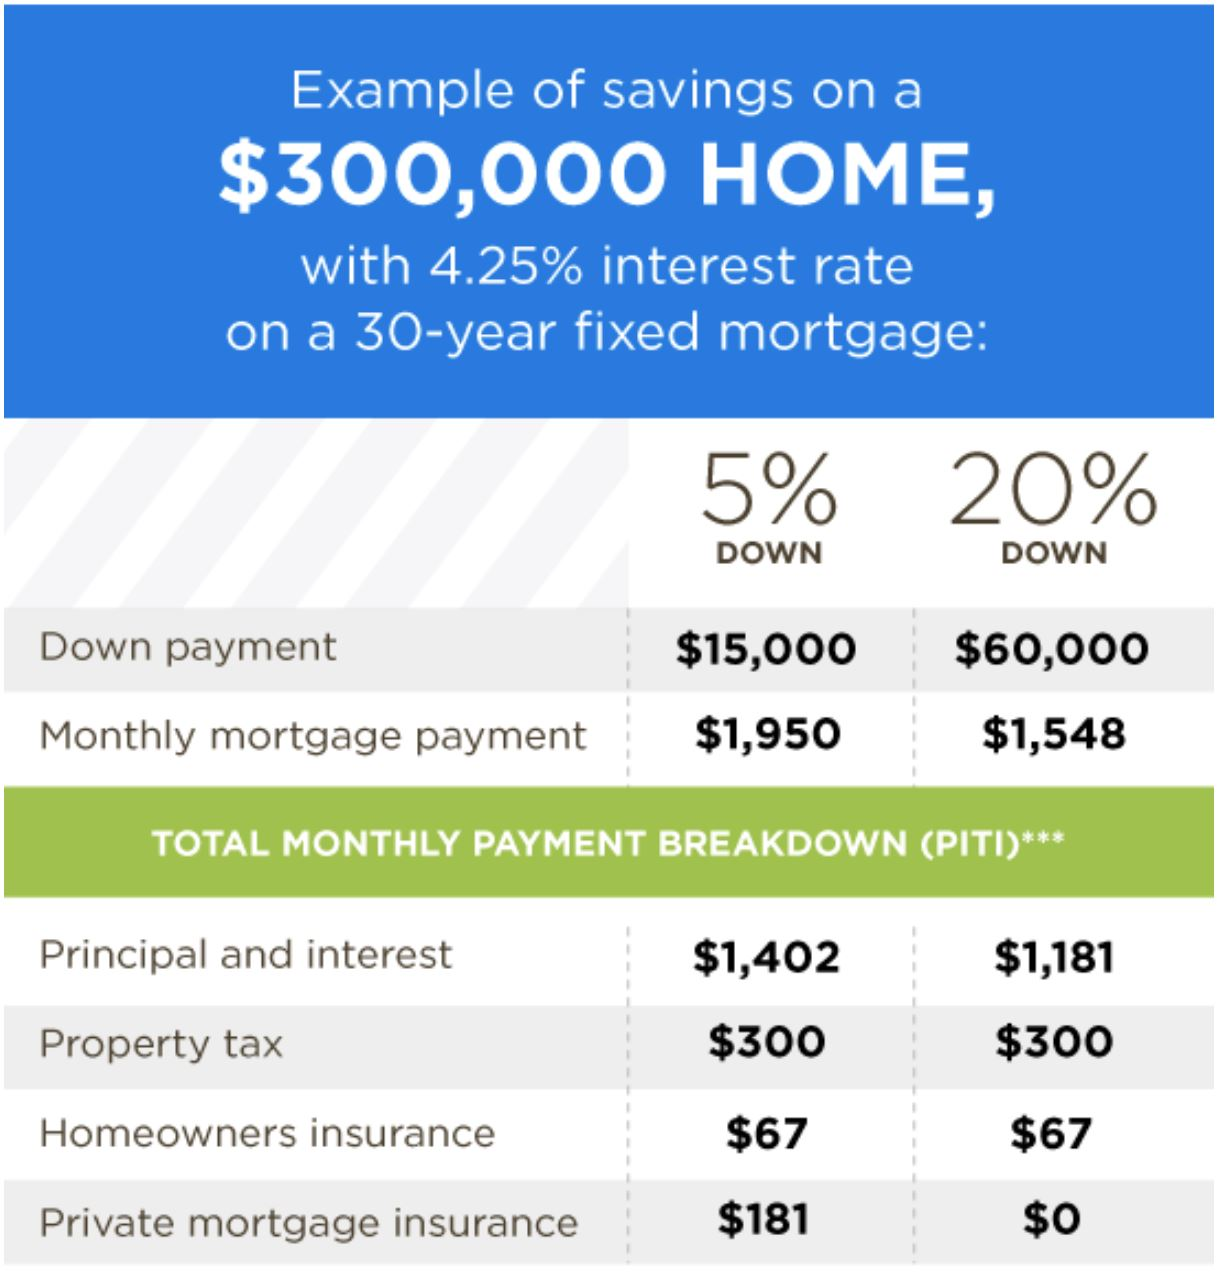 mortgage payment breakdown based on down payment of 5% or 20%